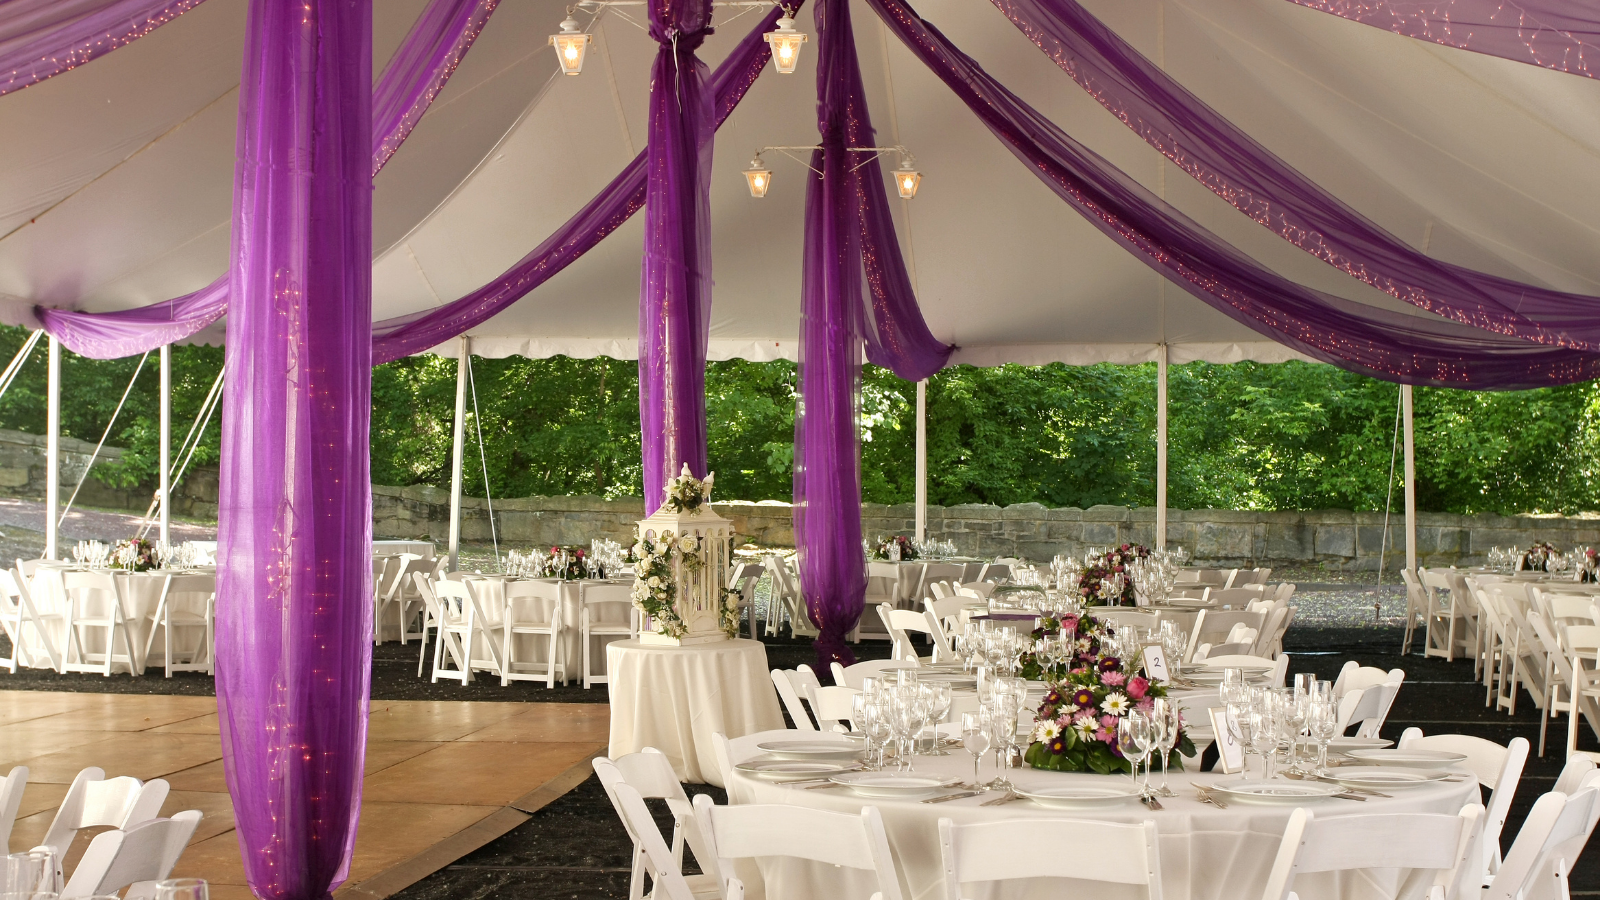 outdoor wedding with purple fabric and string lights draped across the tent